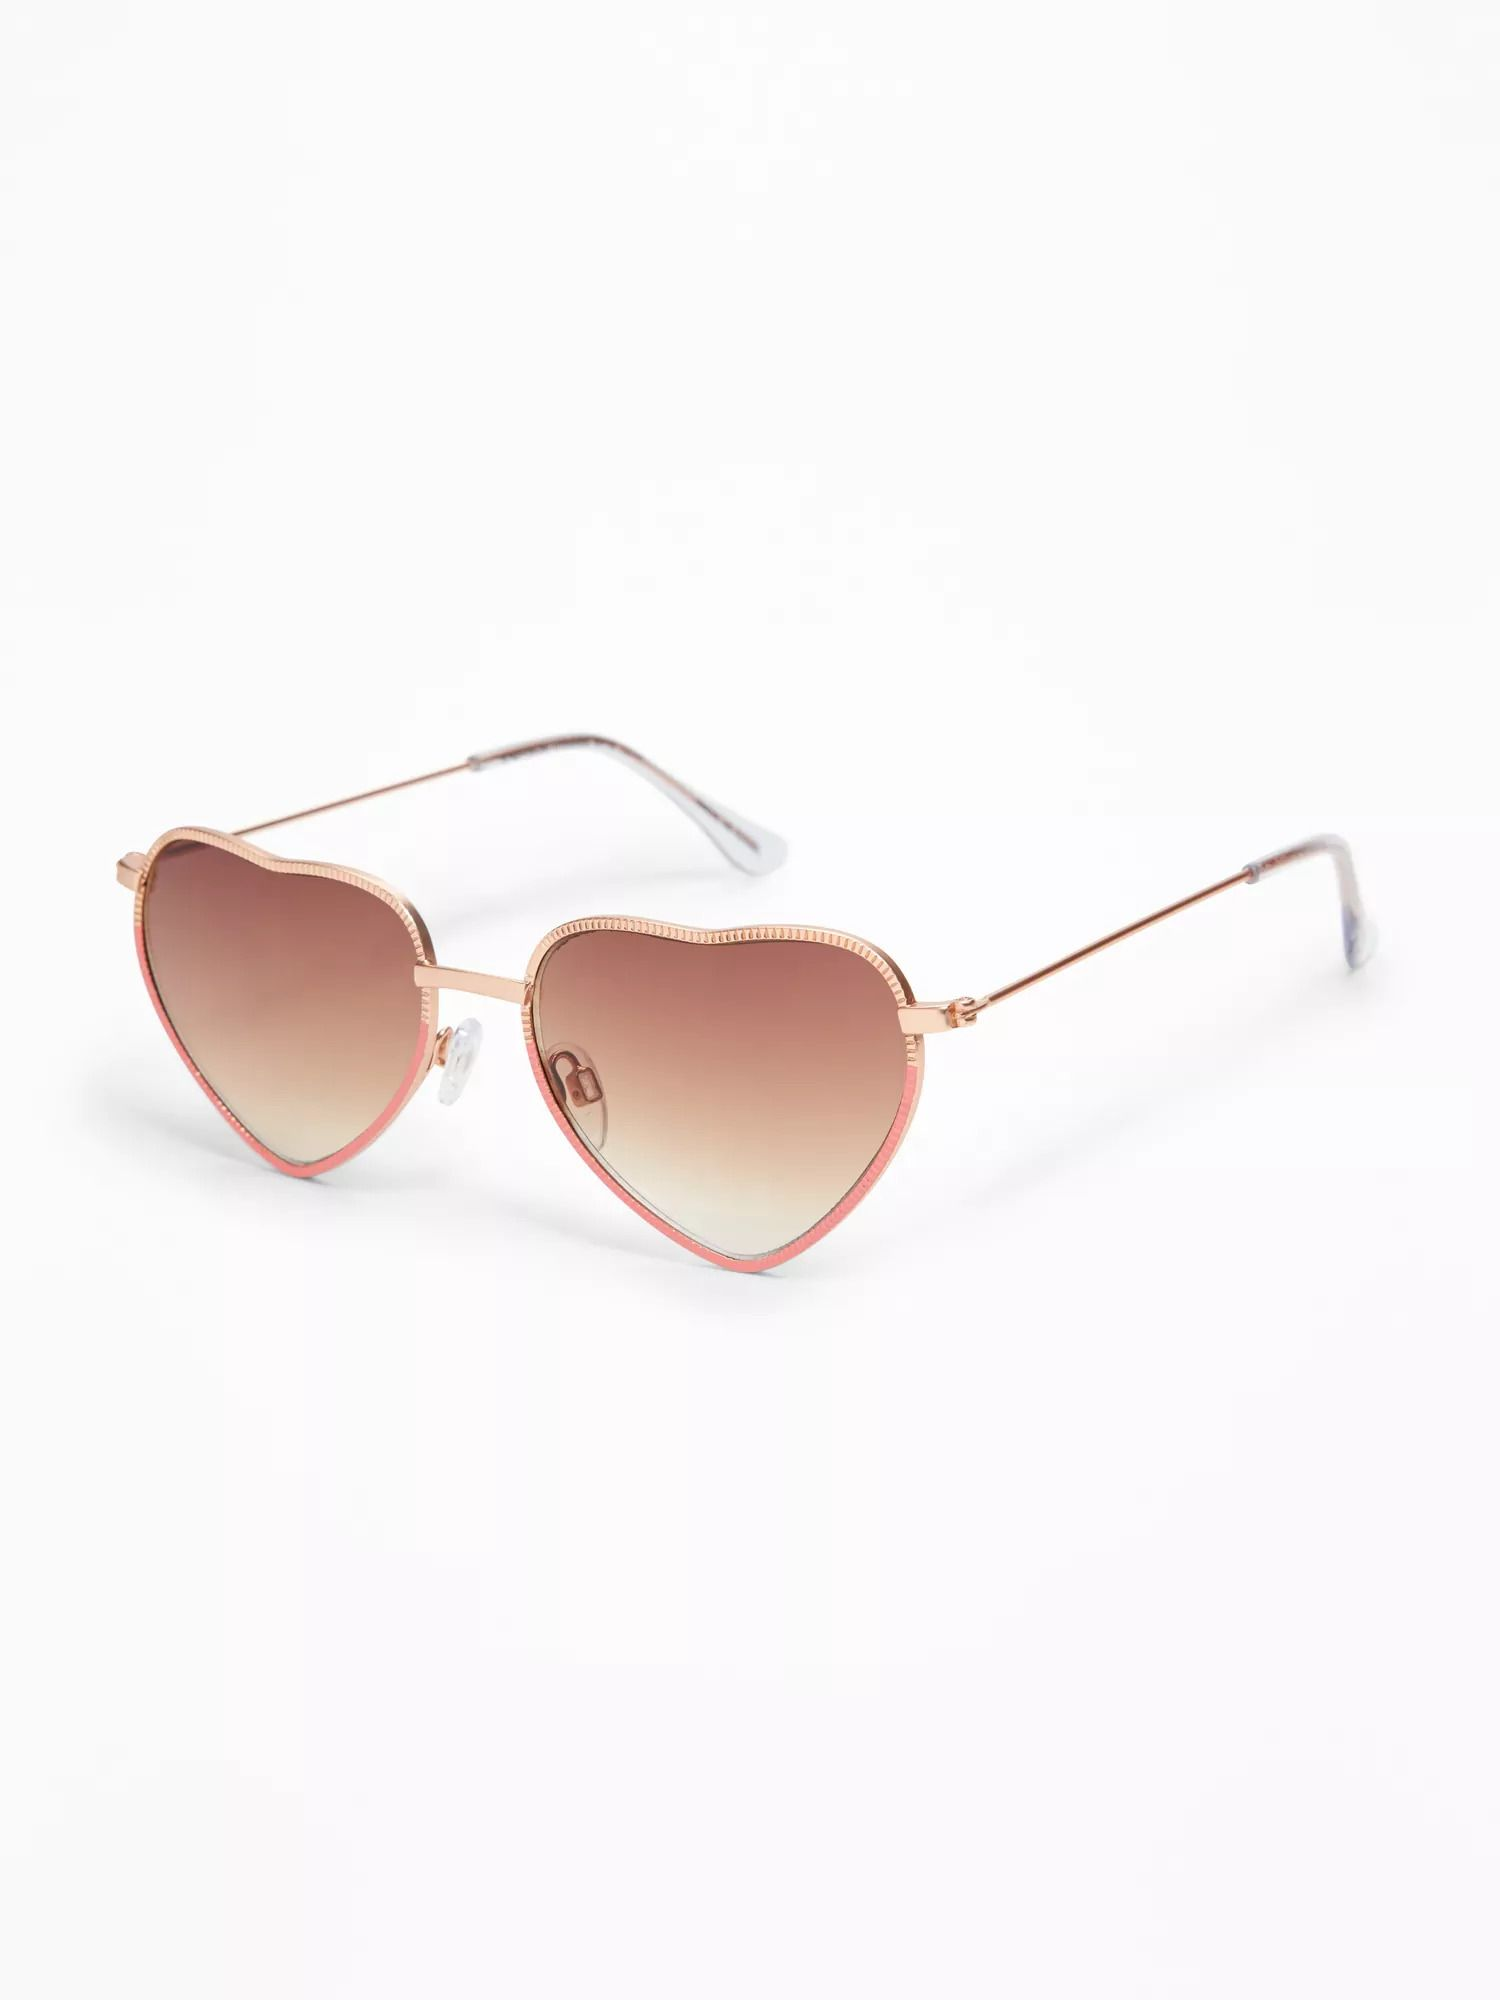 72275cf81 Old Navy: Two-Tone Heart-Shaped Sunglasses - Rose Gold | Accessories ...